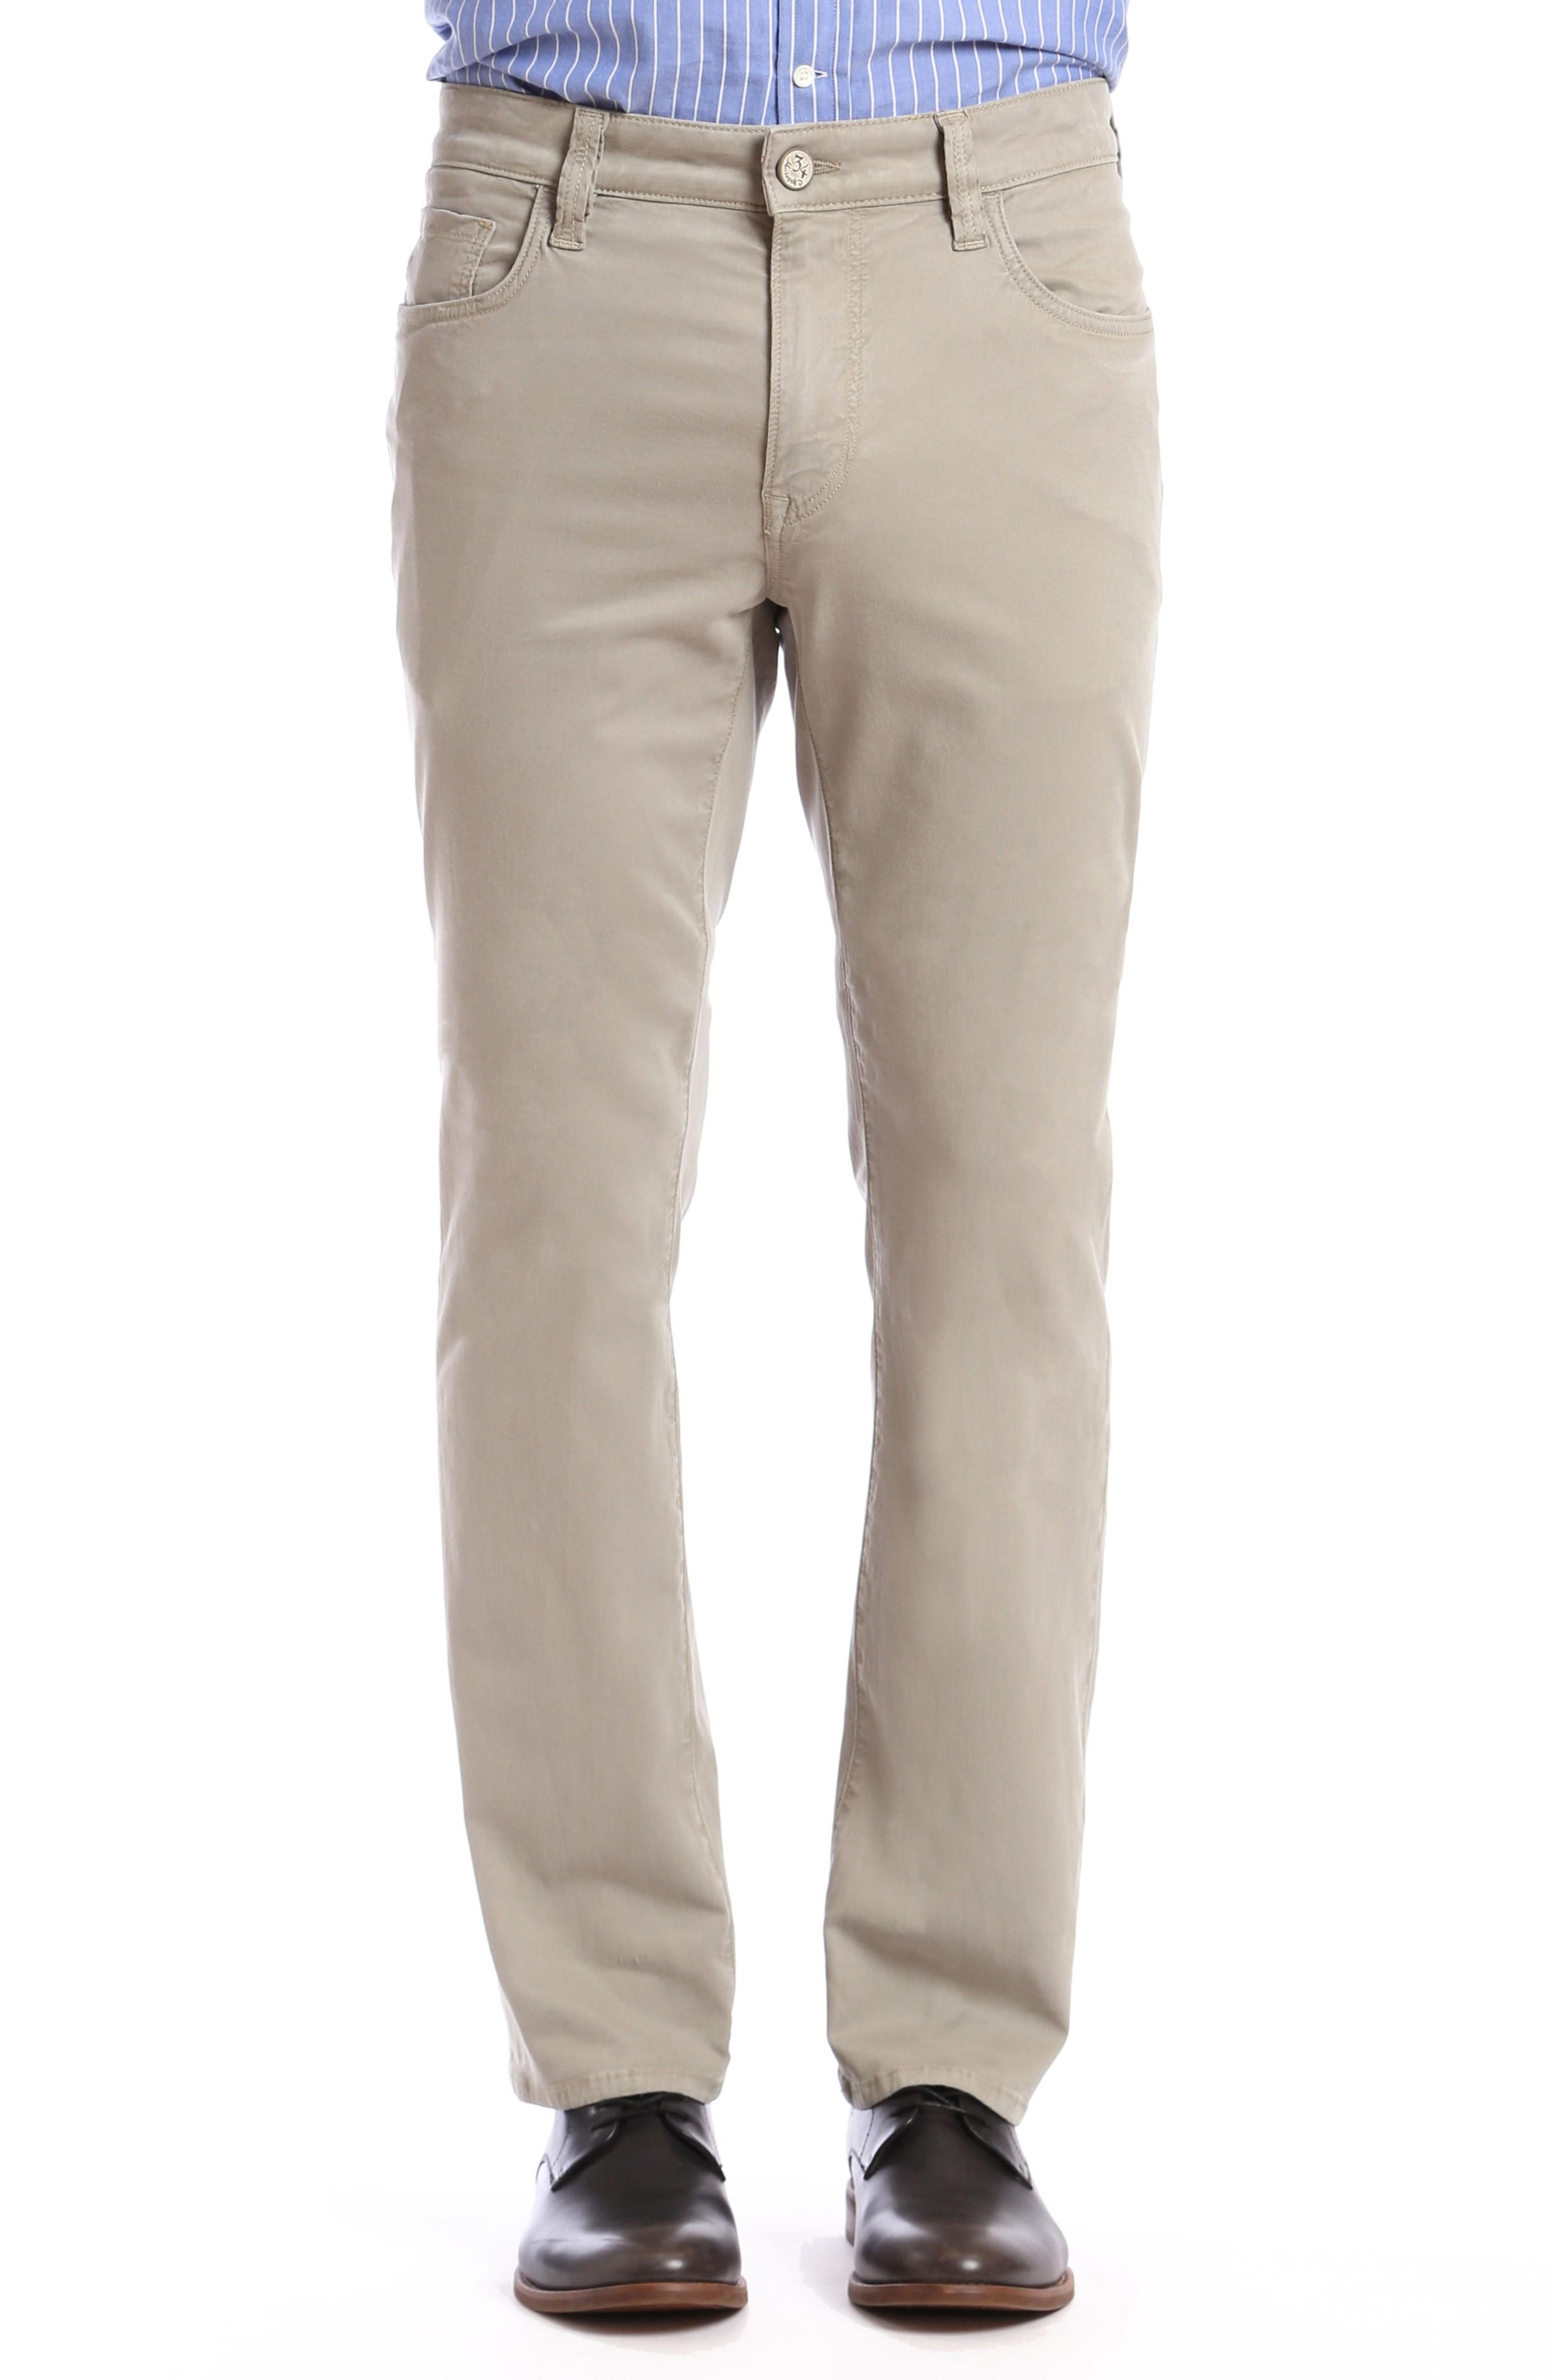 34 Heritage Charisma Relaxed Fit Jeans In Fine Twill